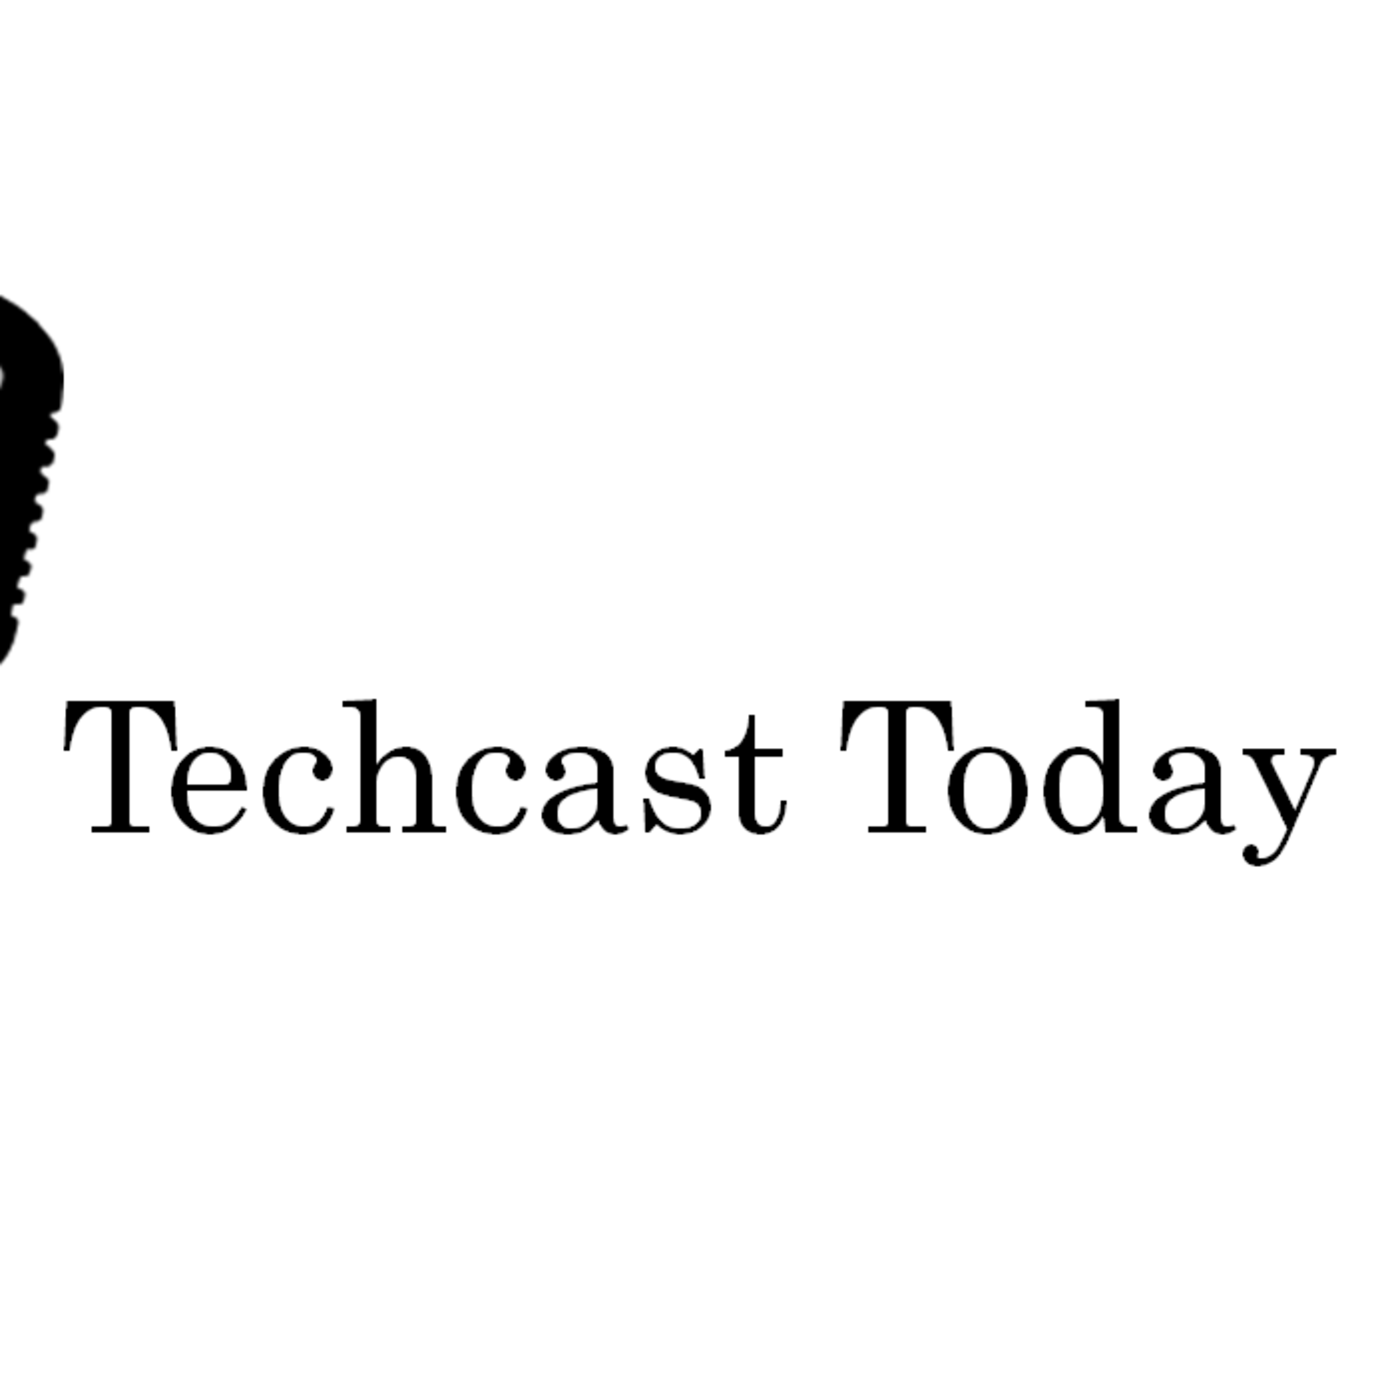 Techcast Today